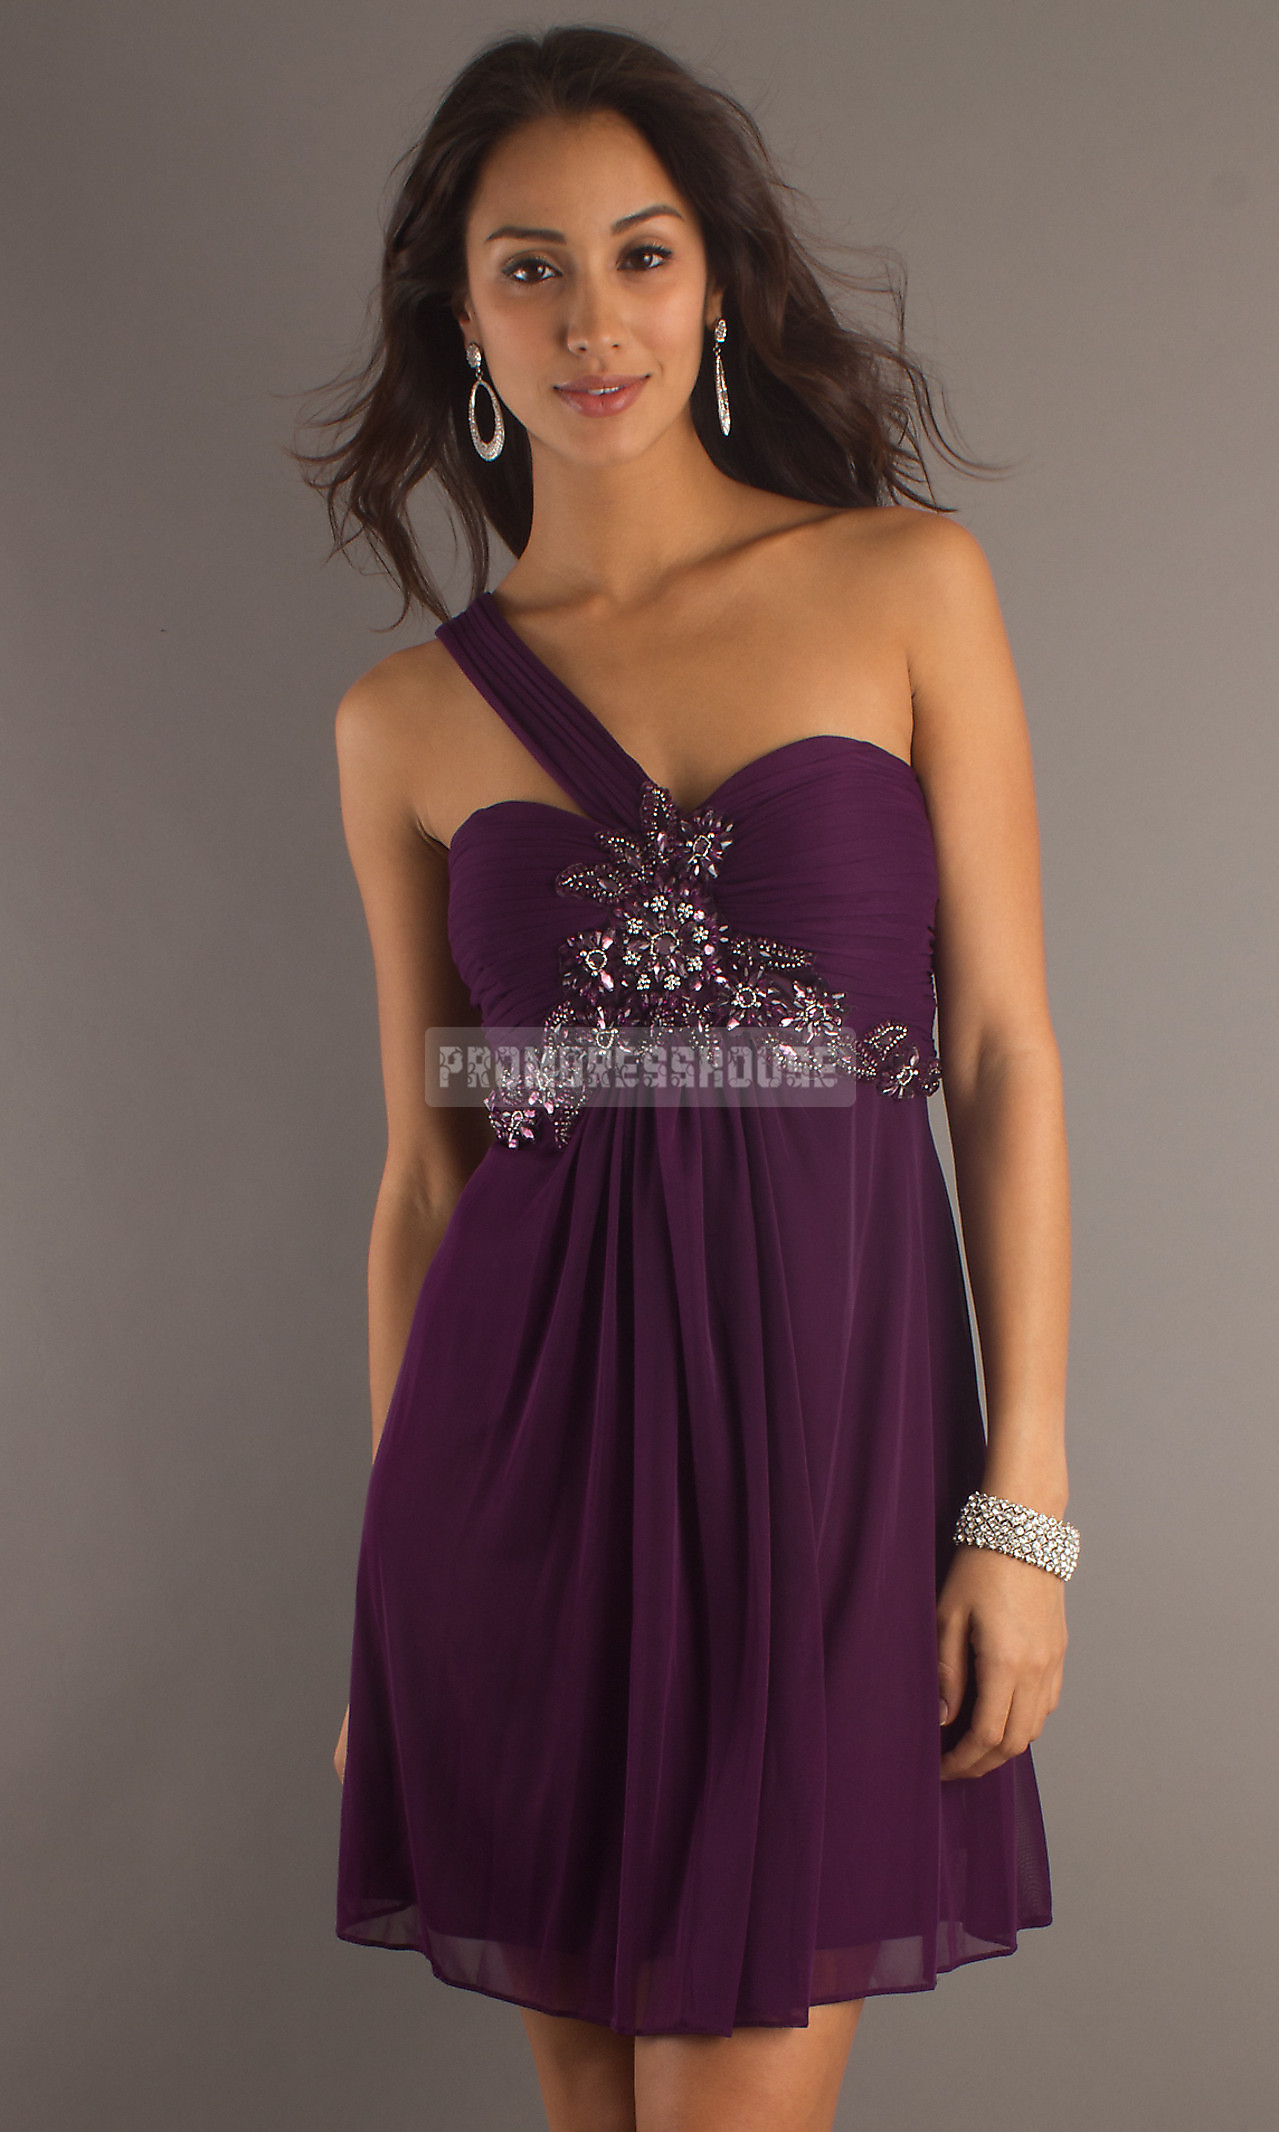 Chiffon One Shoulder Empire A-line Grape Applique Prom Dress - Promdresshouse.com